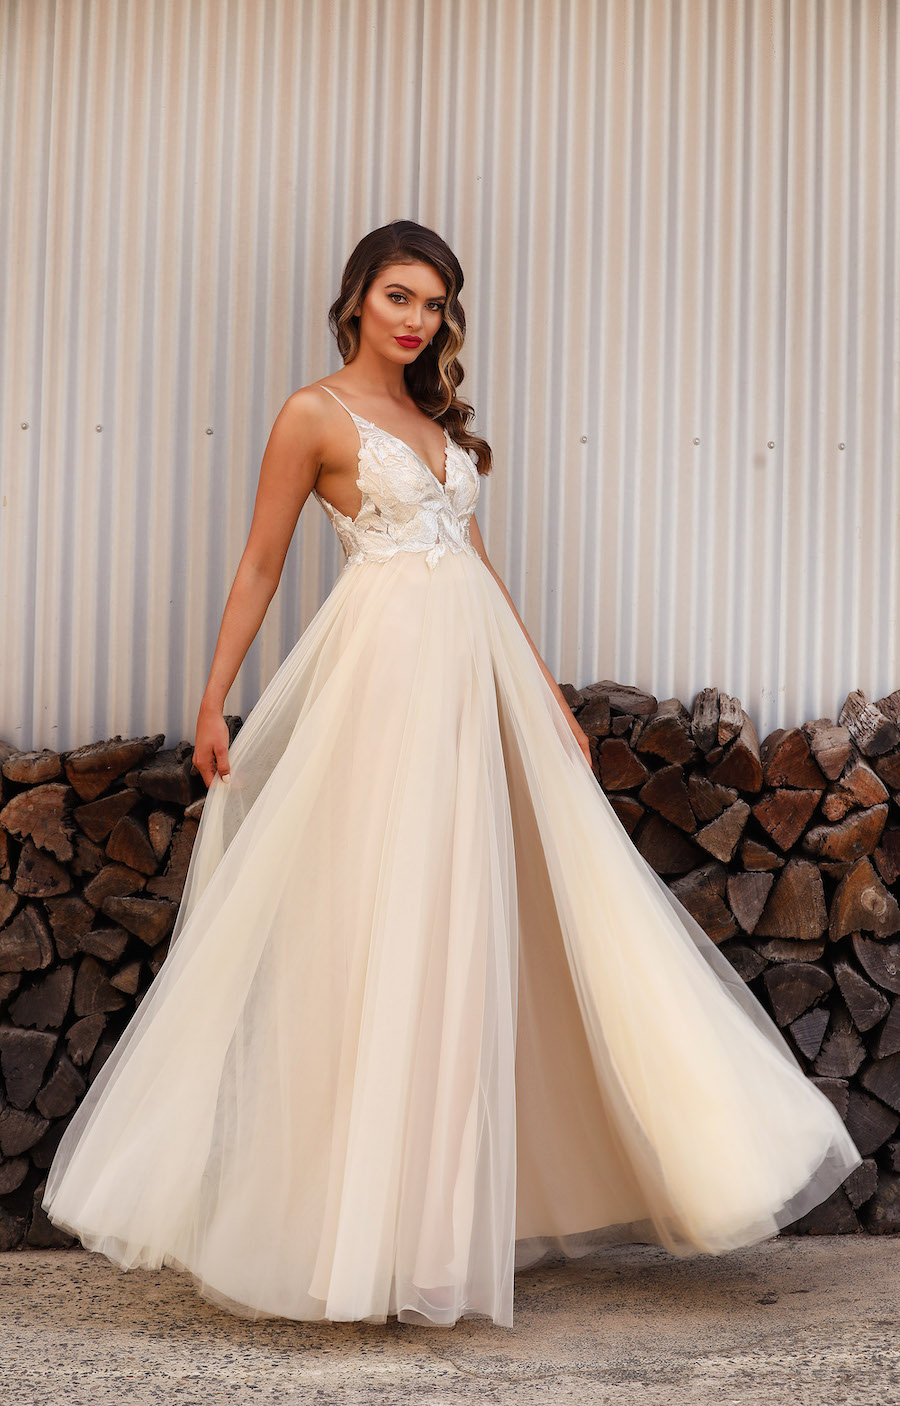 A Beautiful soft full length gown with lace bodice and tulle skirt